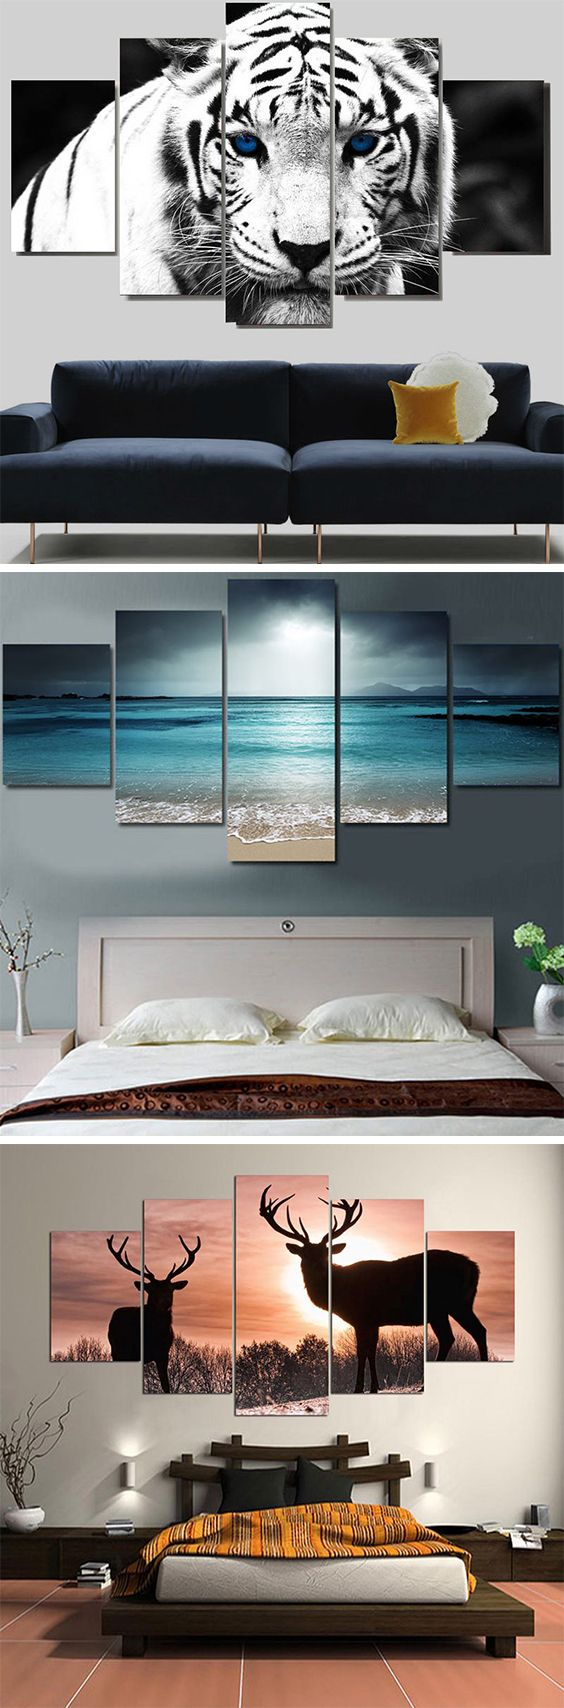 50 Off Canvas Wall Art Free Shipping Woorldwide Apartment Wall Art Cheap Canvas Wall Art Wall Art Canvas Painting